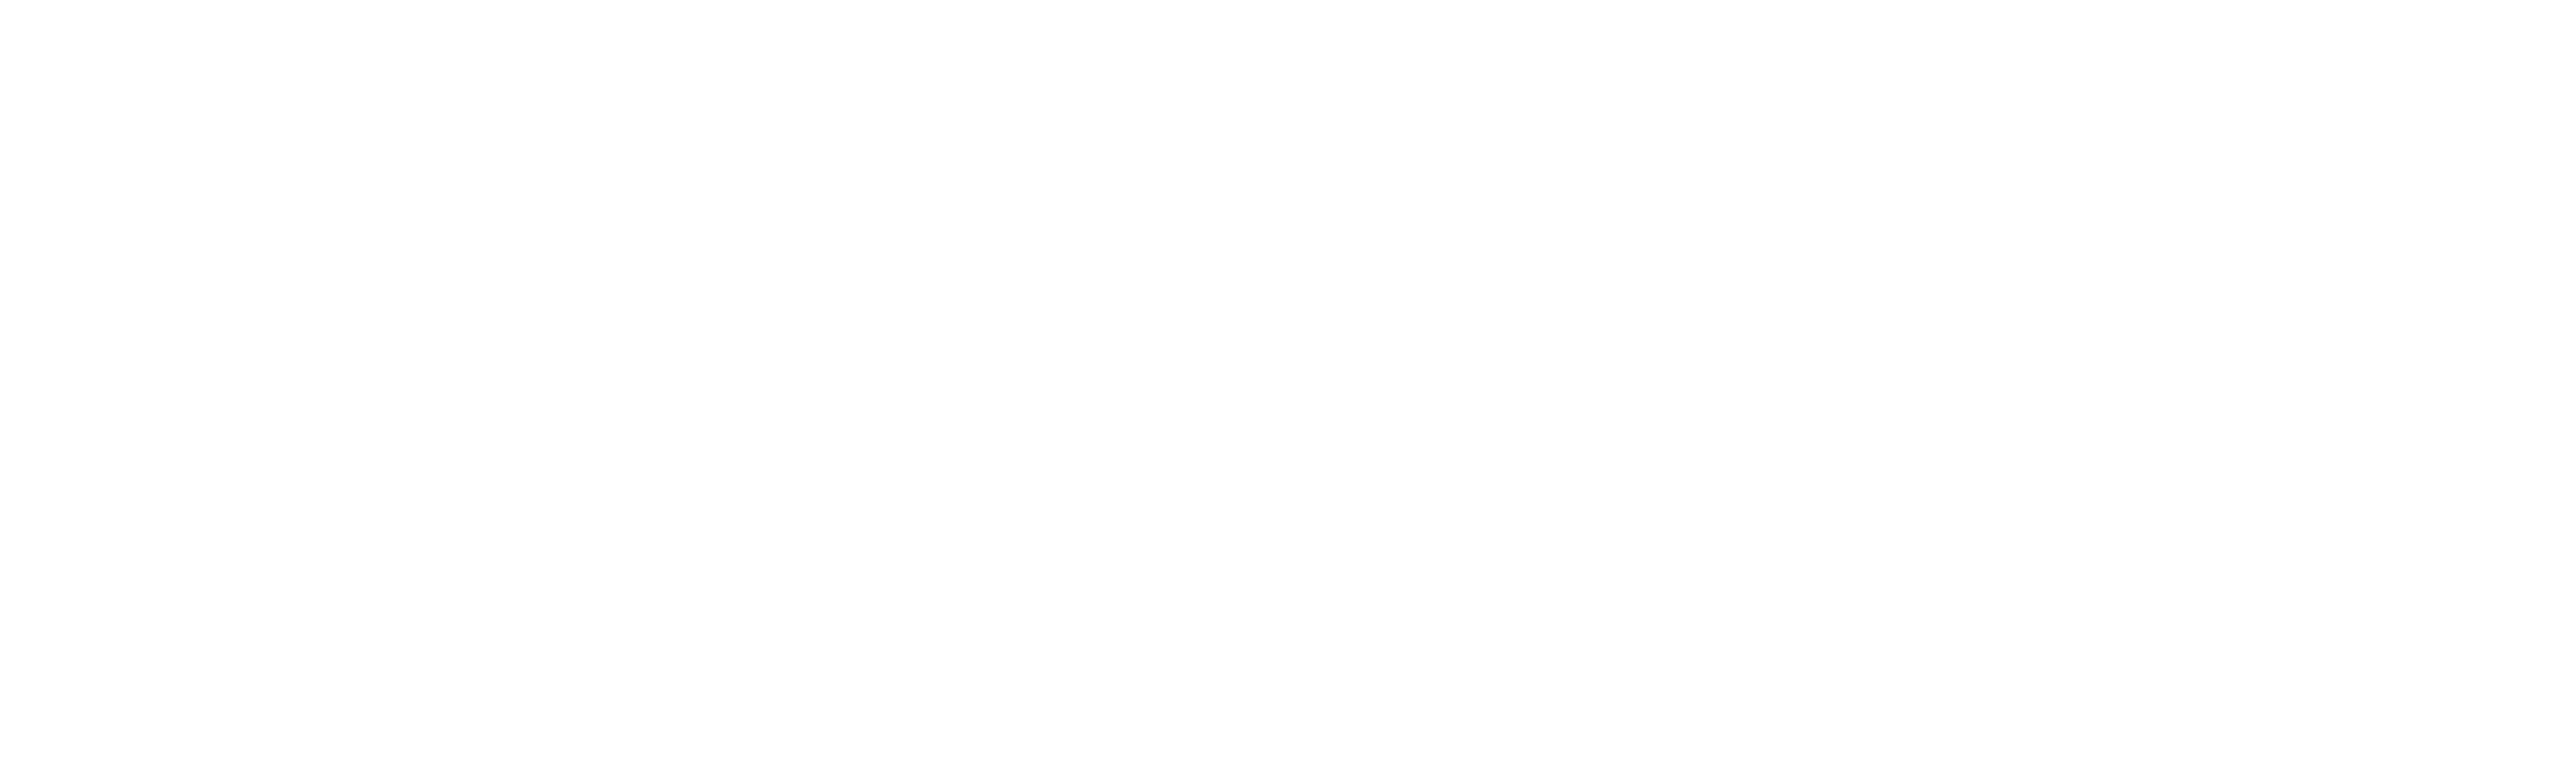 Meded manager logo white